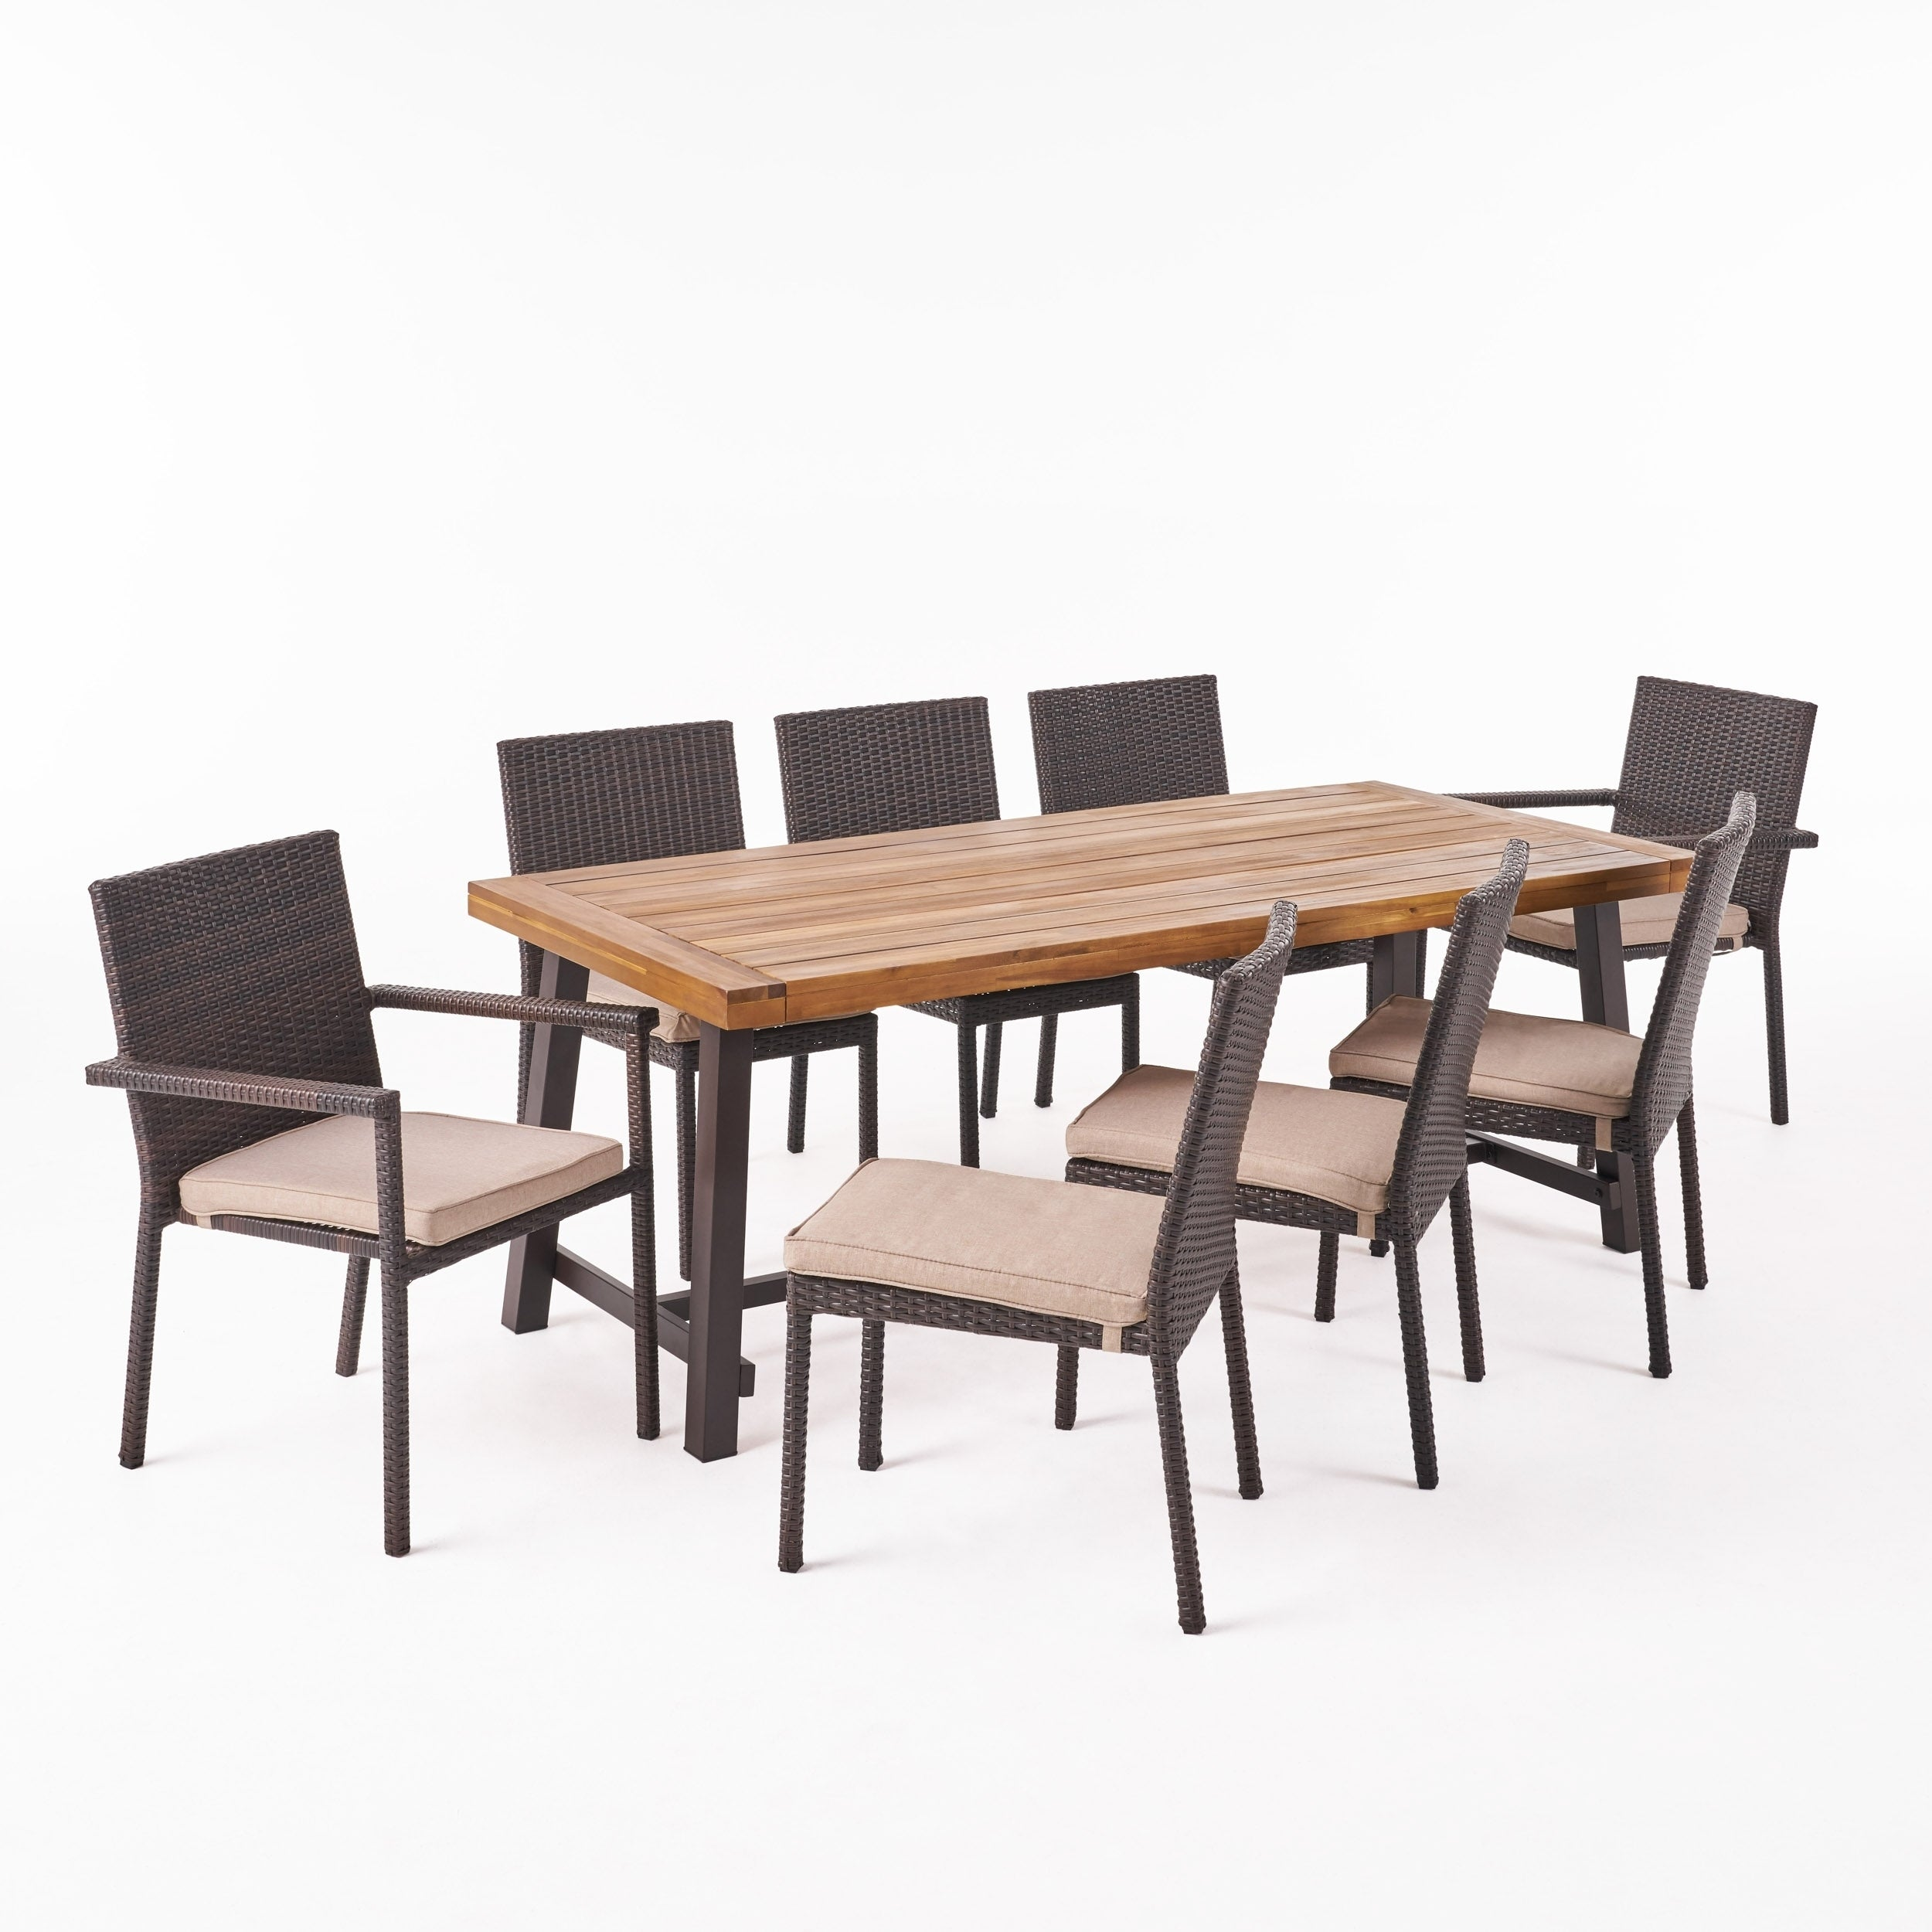 Outdoor 8 Seater Wood And Wicker Dining